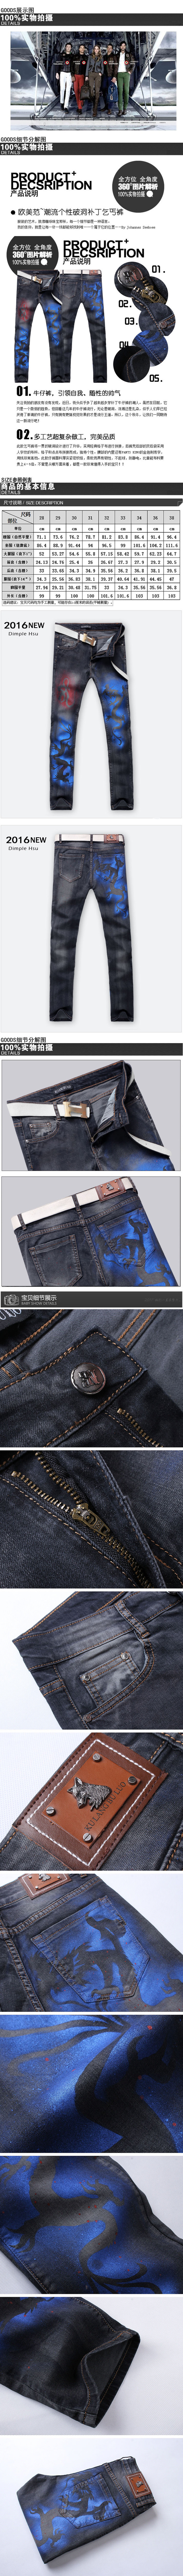 Genuine Yinlong jeans small straight men's jeans Korean men's jeans wholesale